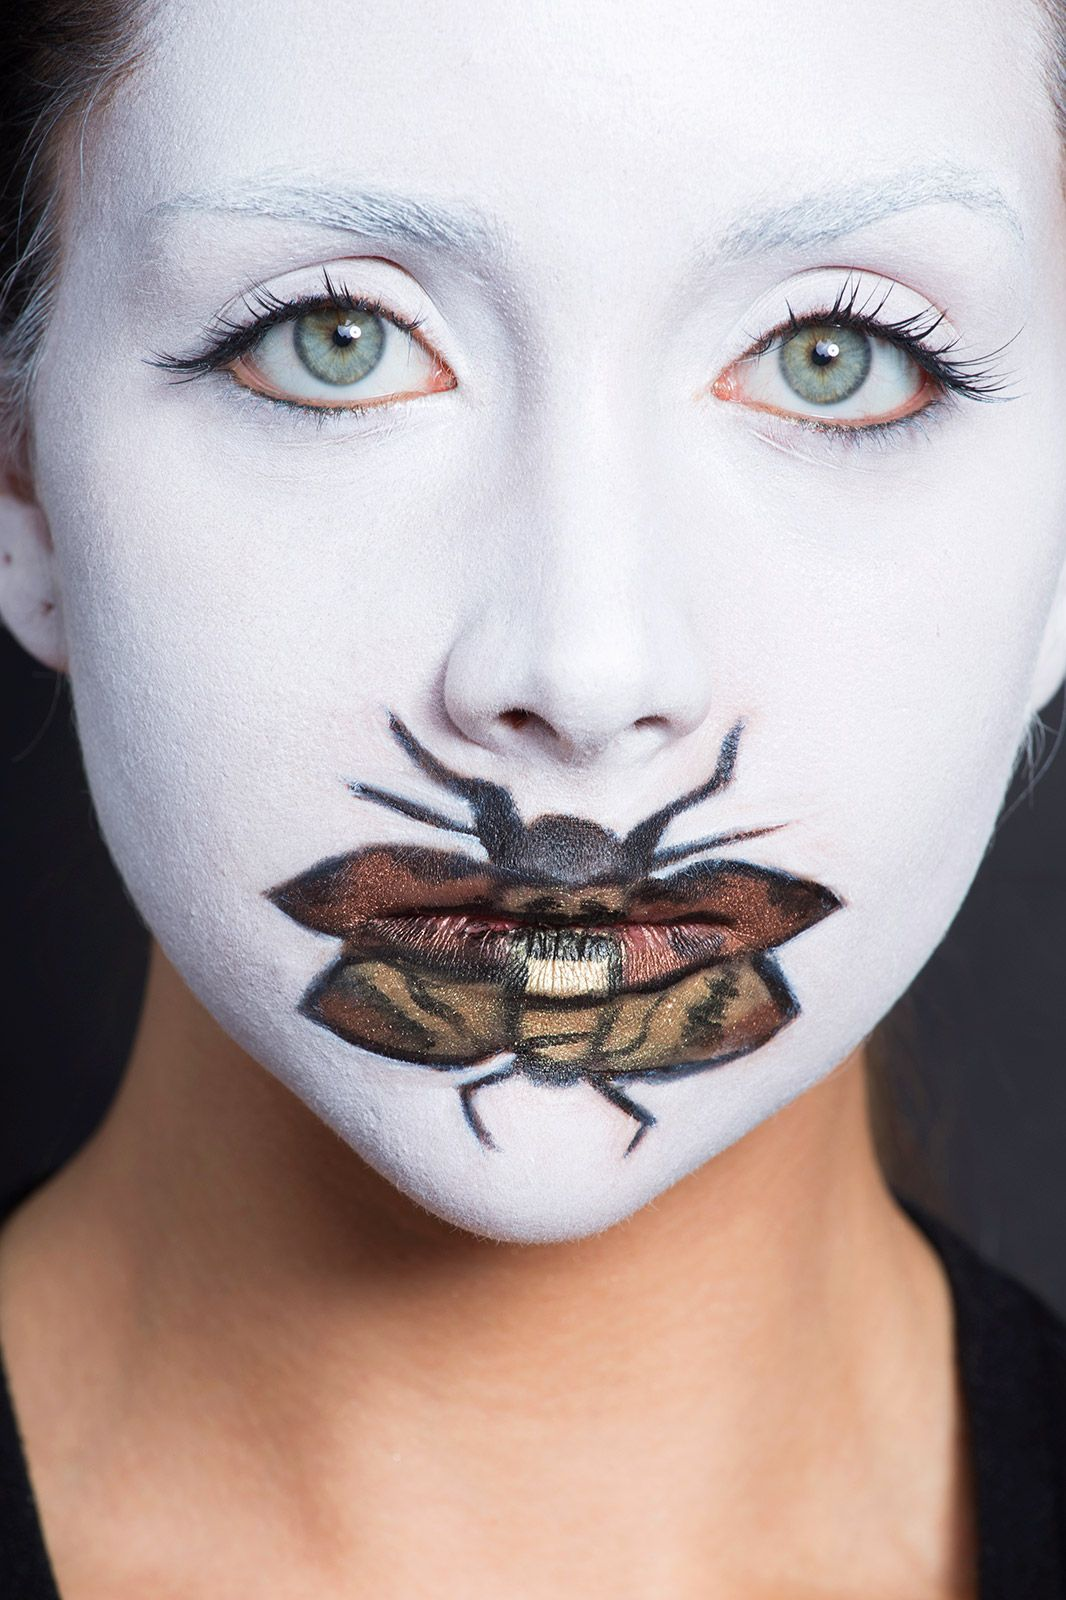 6 No-Clothes-Required Halloween Costumes | Horror film, Halloween ... for Lamb Face Paint  299kxo